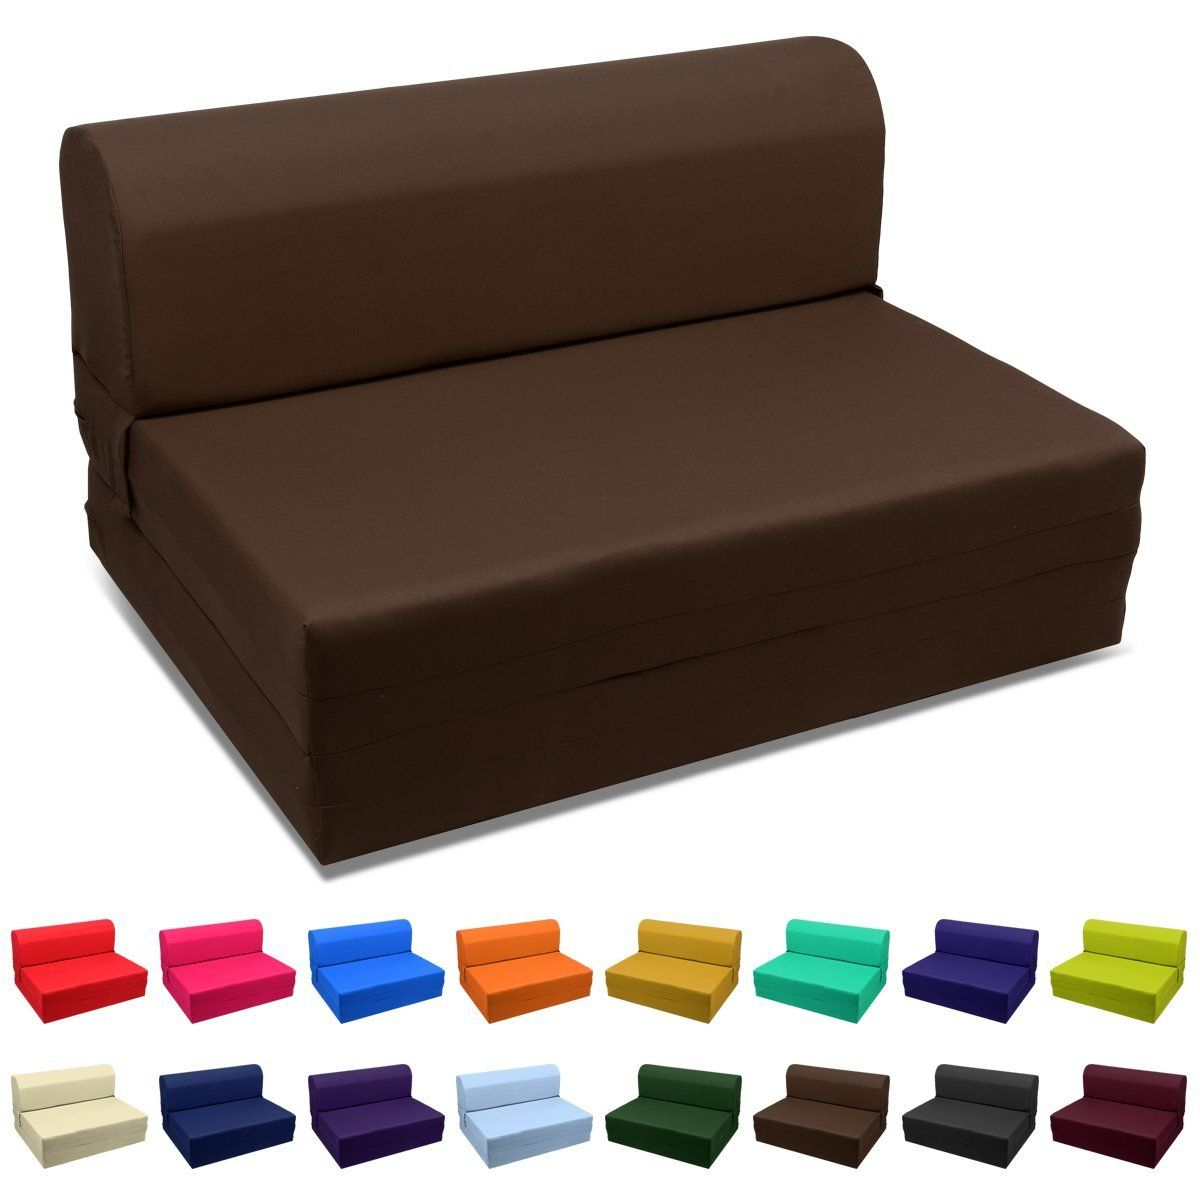 Newest Magshion Futon Furniture Sleeper Chair Folding Foam Bed Pertaining To Onderdonk Faux Leather Convertible Chairs (View 8 of 20)